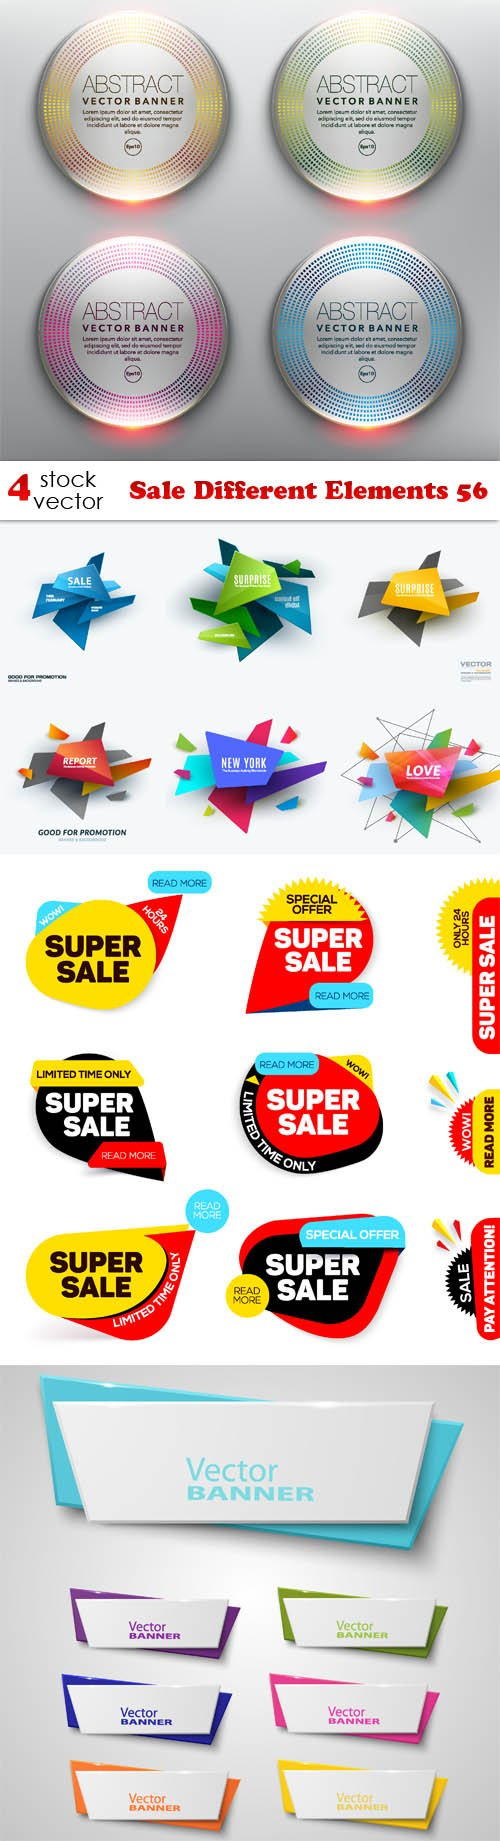 Vectors - Sale Different Elements 56